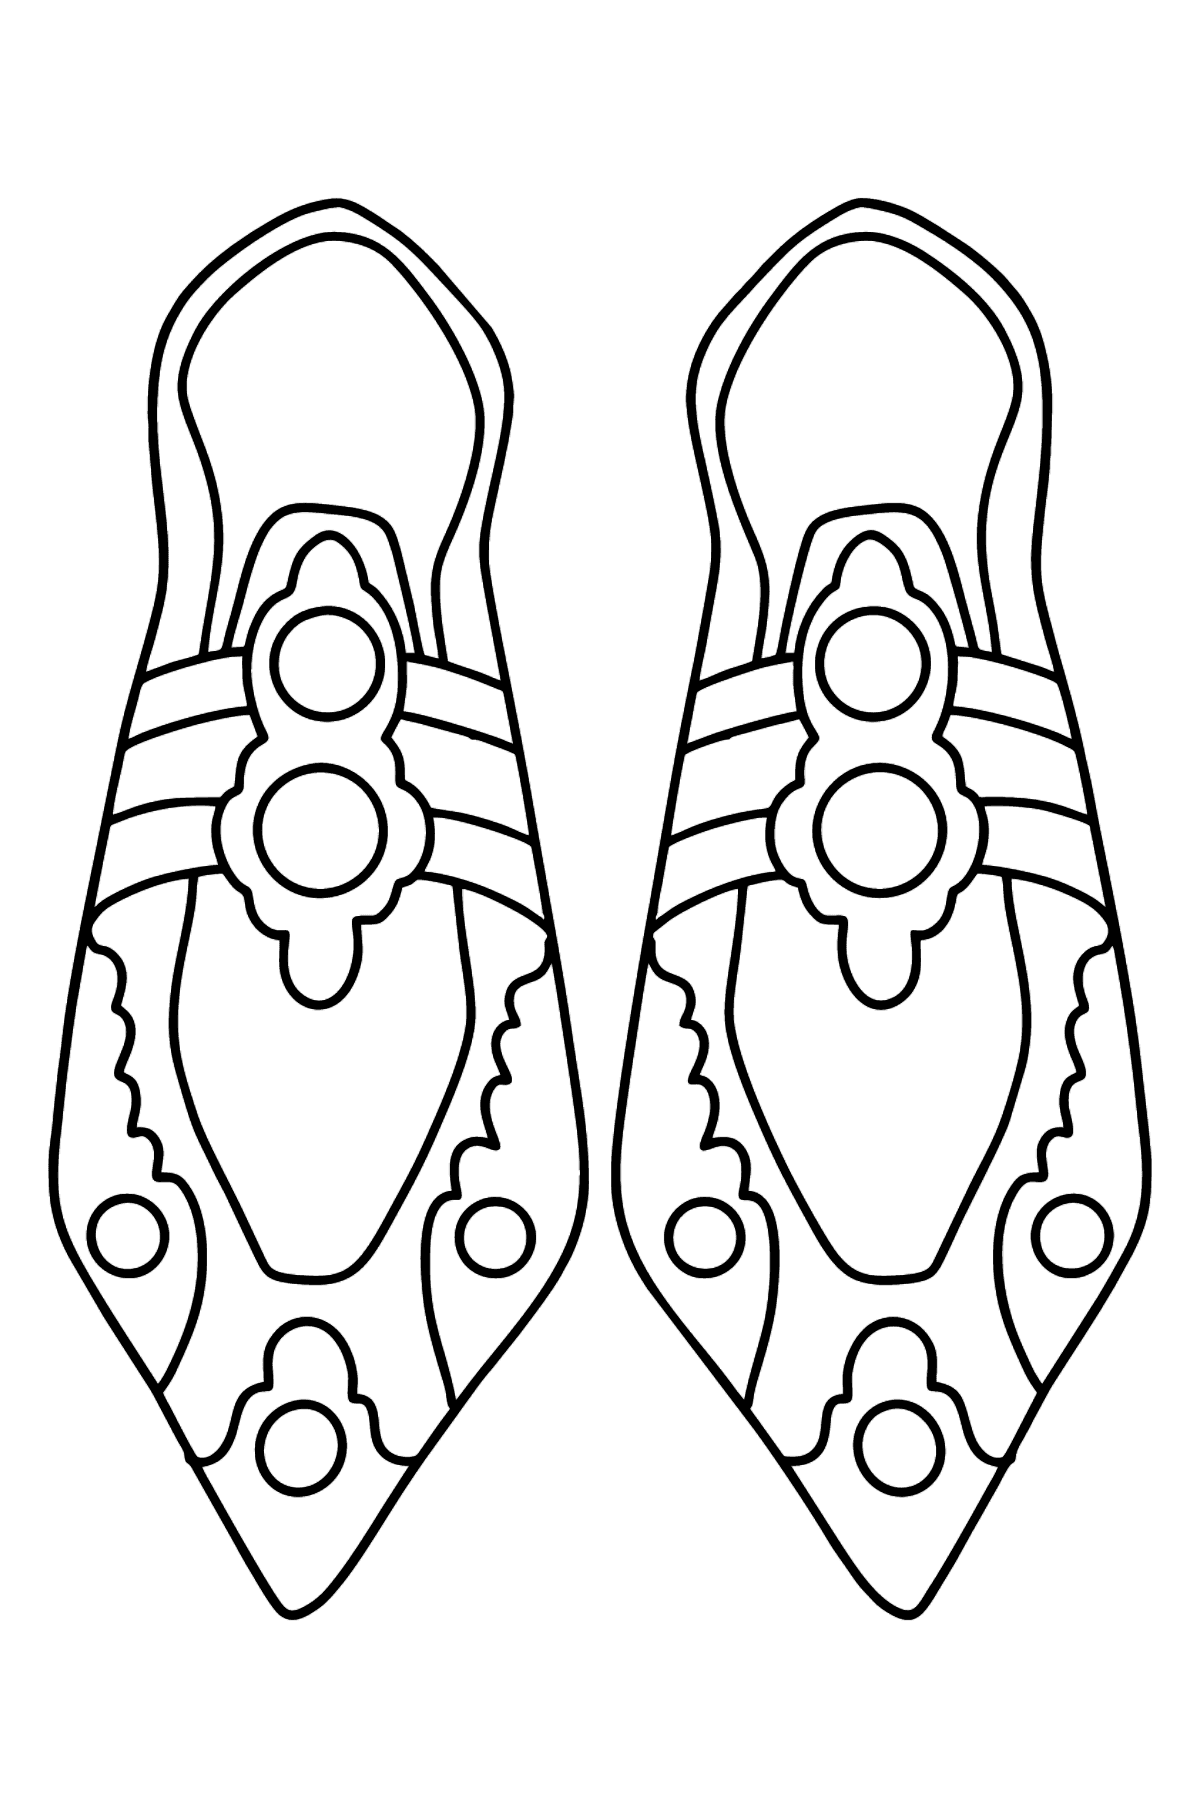 Coloring page with shoes - Coloring Pages for Kids